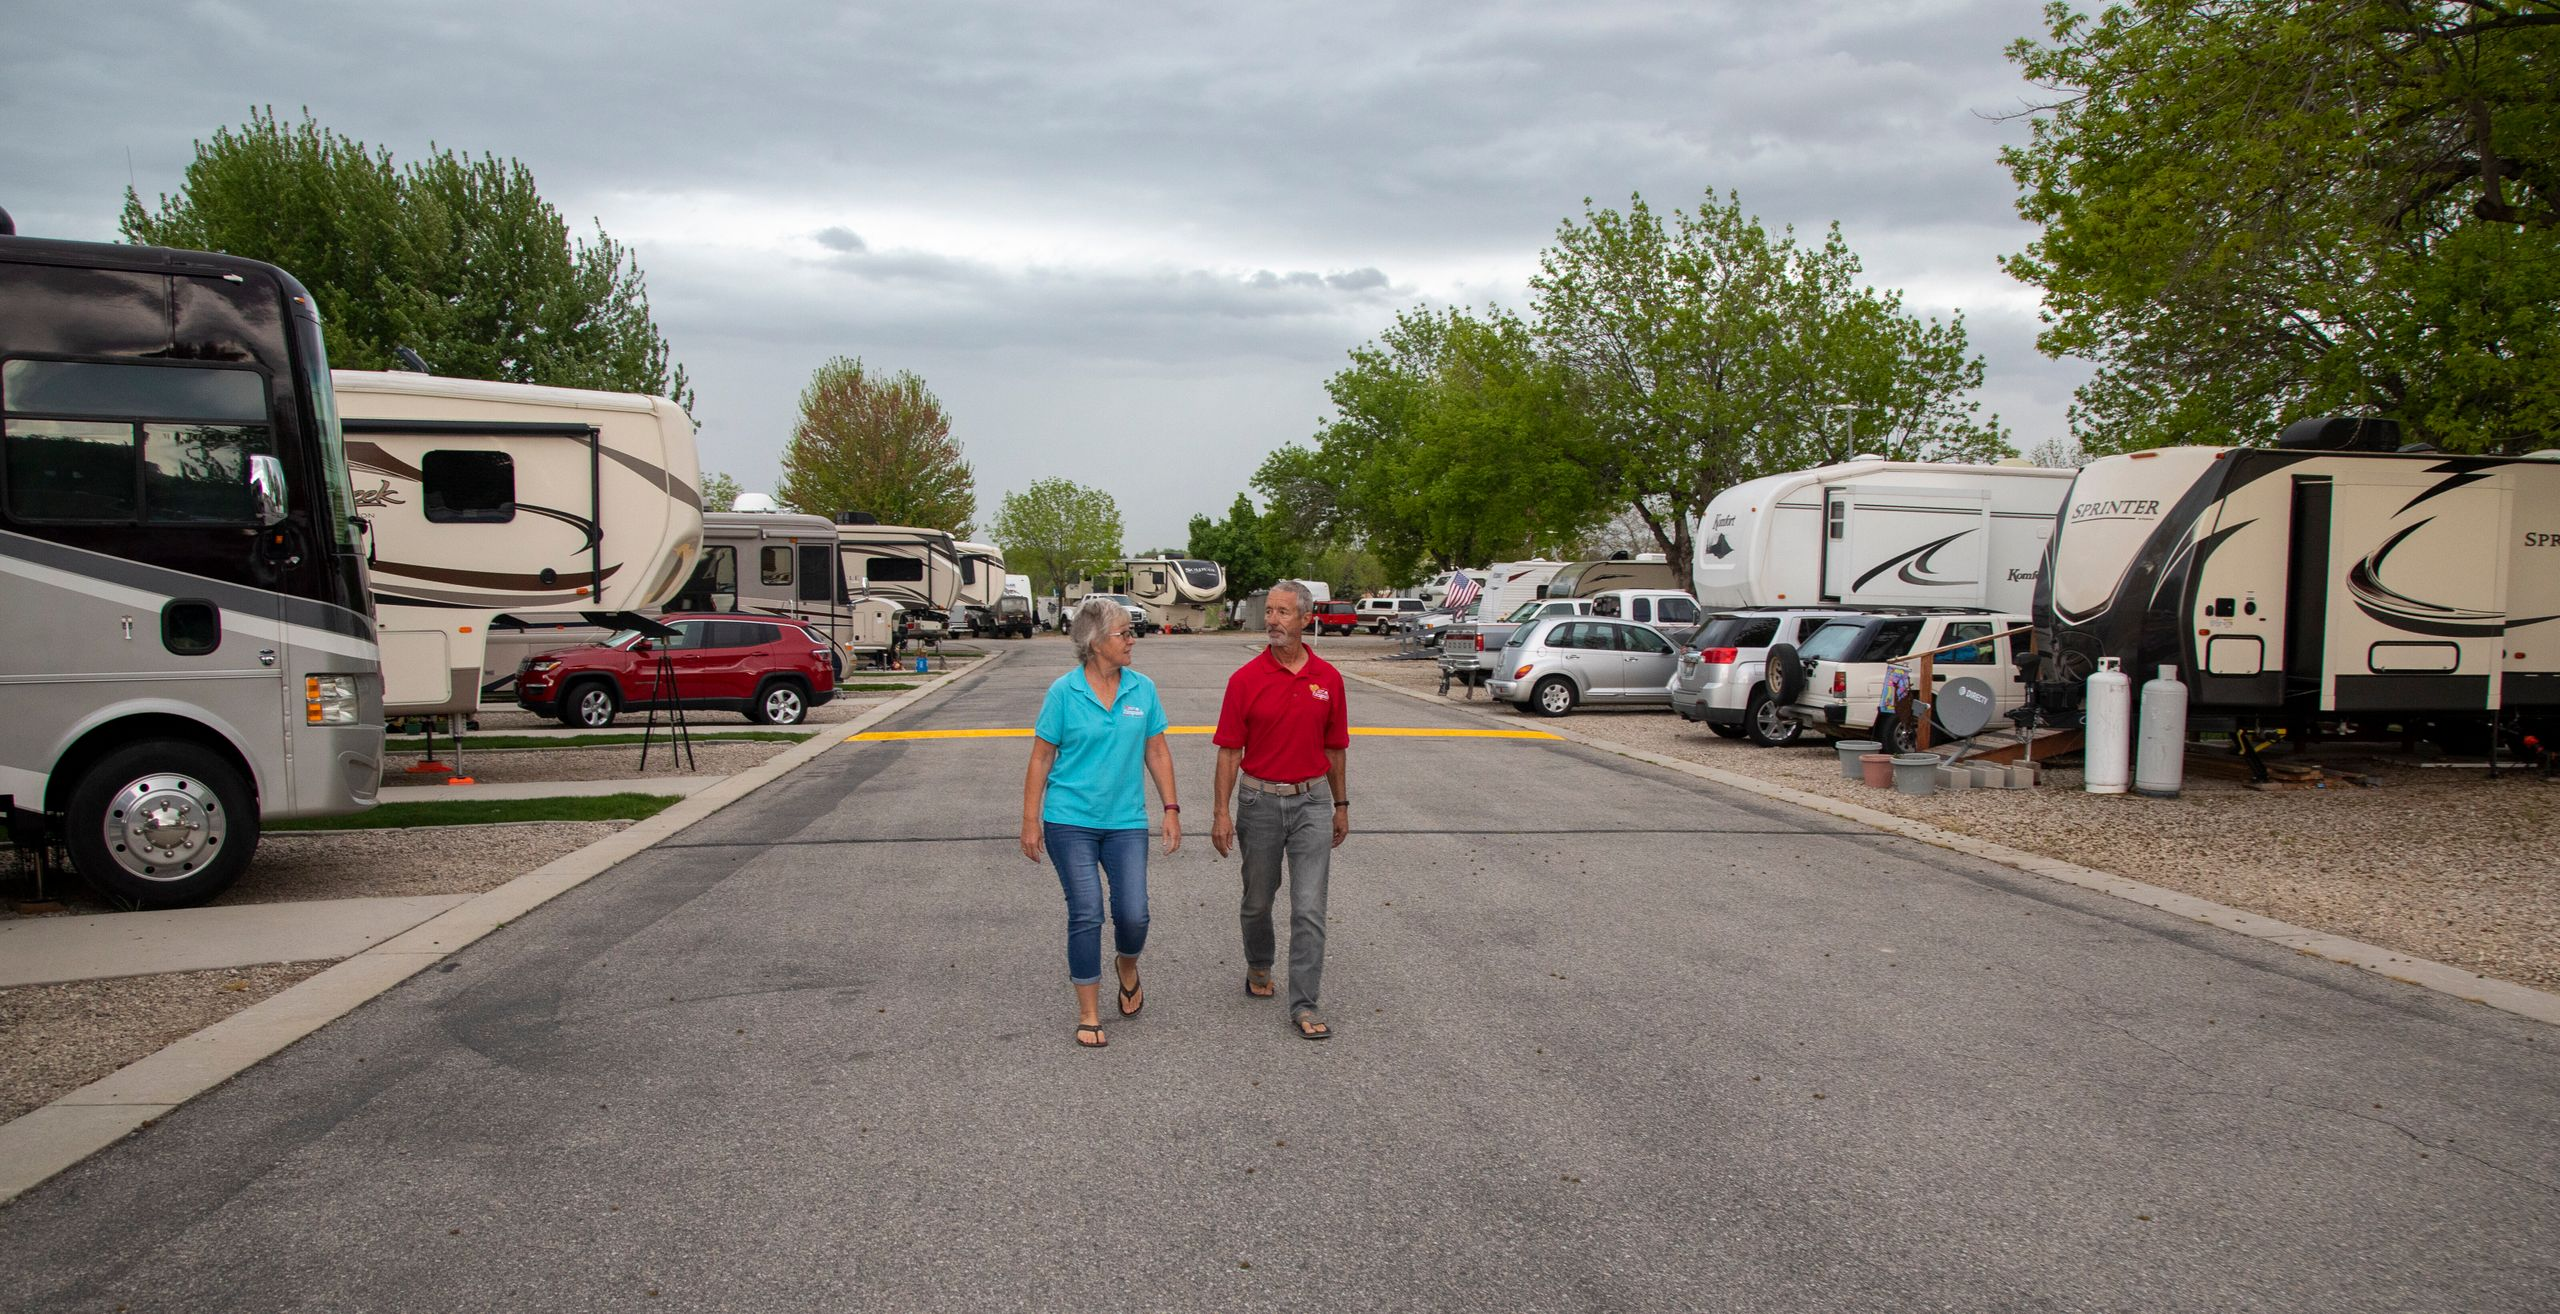 Jean and Duane Mathes take a walk through the Hi Valley RV Park in Eagle, Idaho.